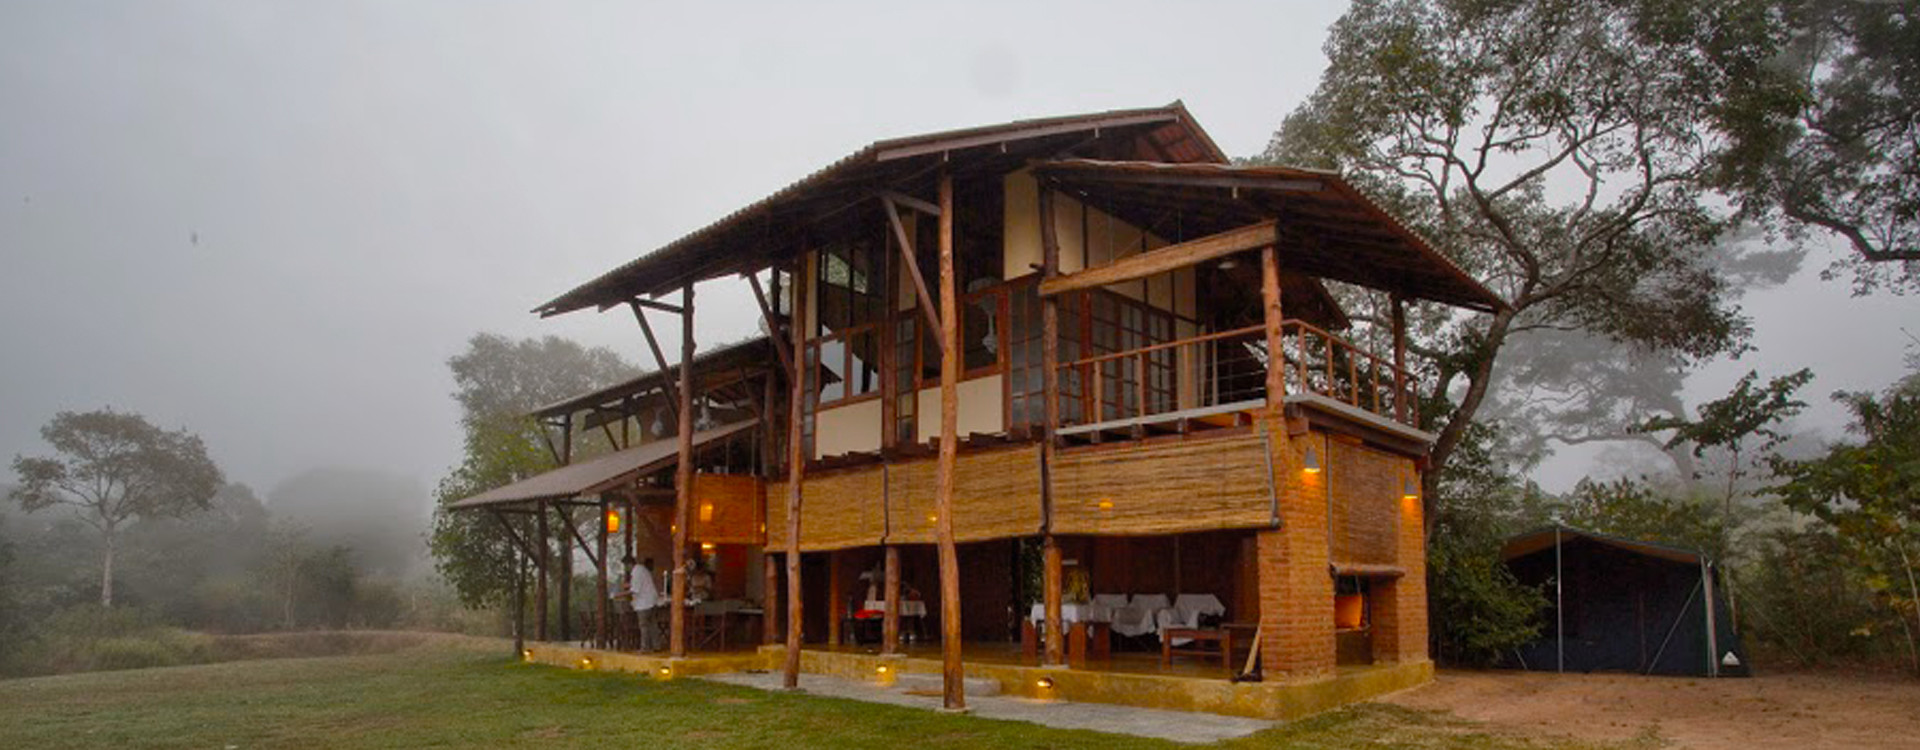 Farcry habarana forest retreat – bungalow